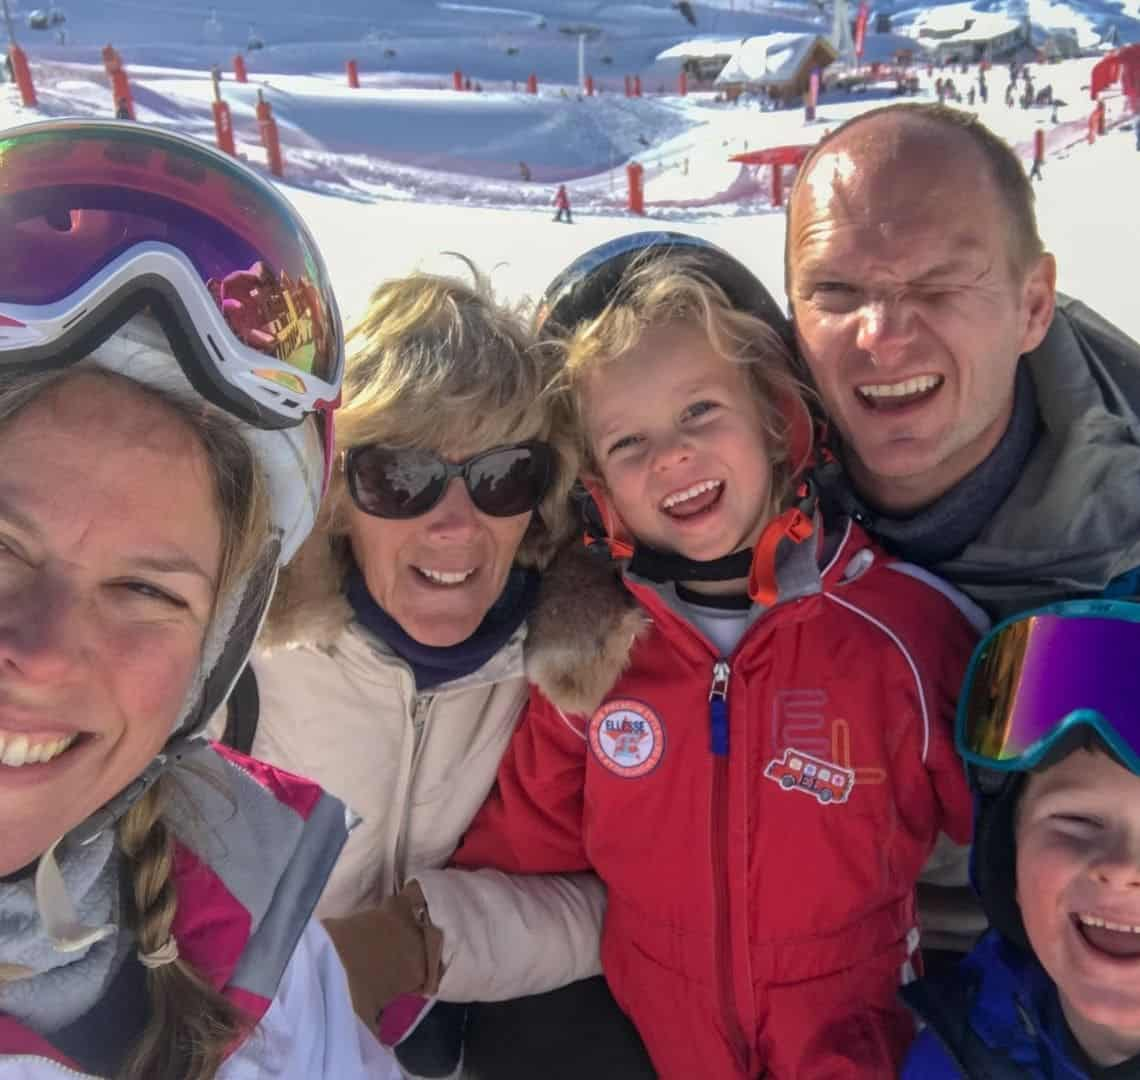 Ski selfie! We are all wearing ski and winter wear. It is me with goggles on my helmet, Granny wanderlust wearingg a cream coat and sunglasses, Thing 2 in a red ski suit, Mr Wanderlust squinting in a grey jacket and Thing one in a blue jacked and with blue goggles on his helmet (partially cut off). Behind us is snow and other skiers